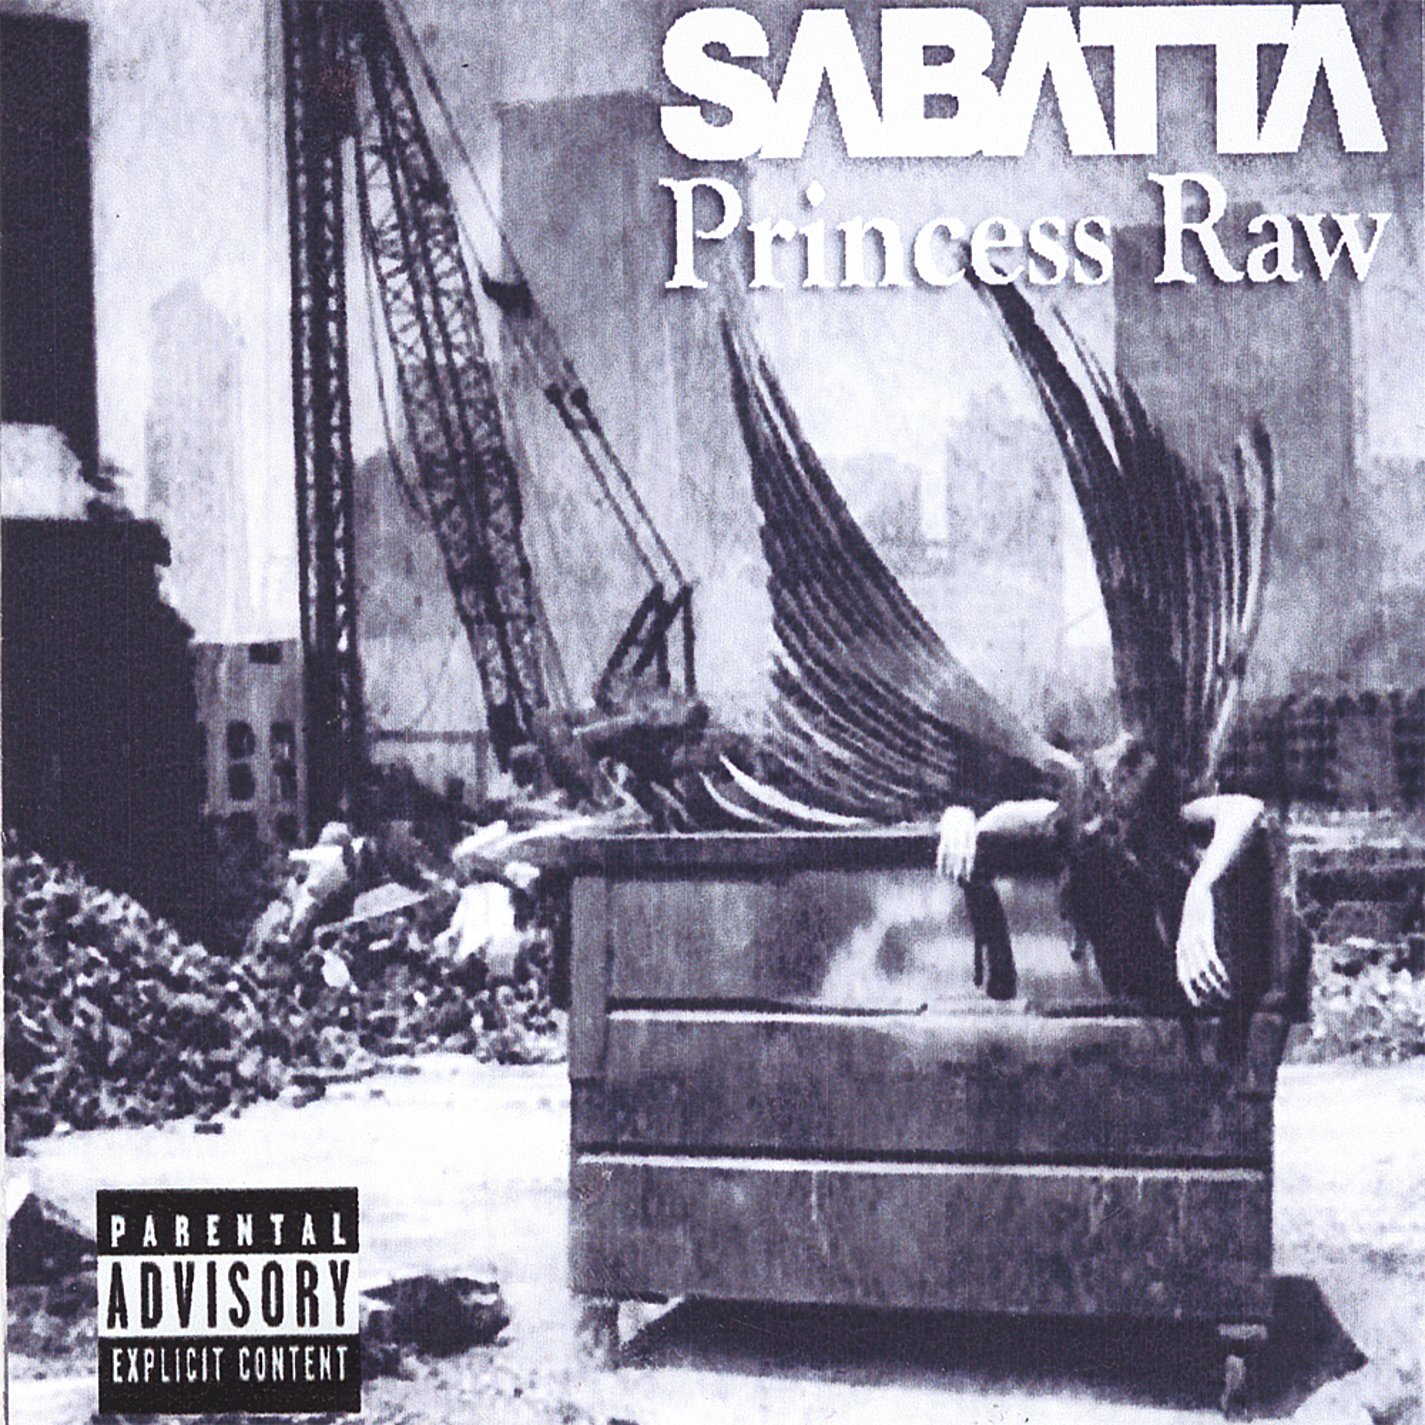 SABATTA - PRINCESS RAW SPECIAL EDITION - CD